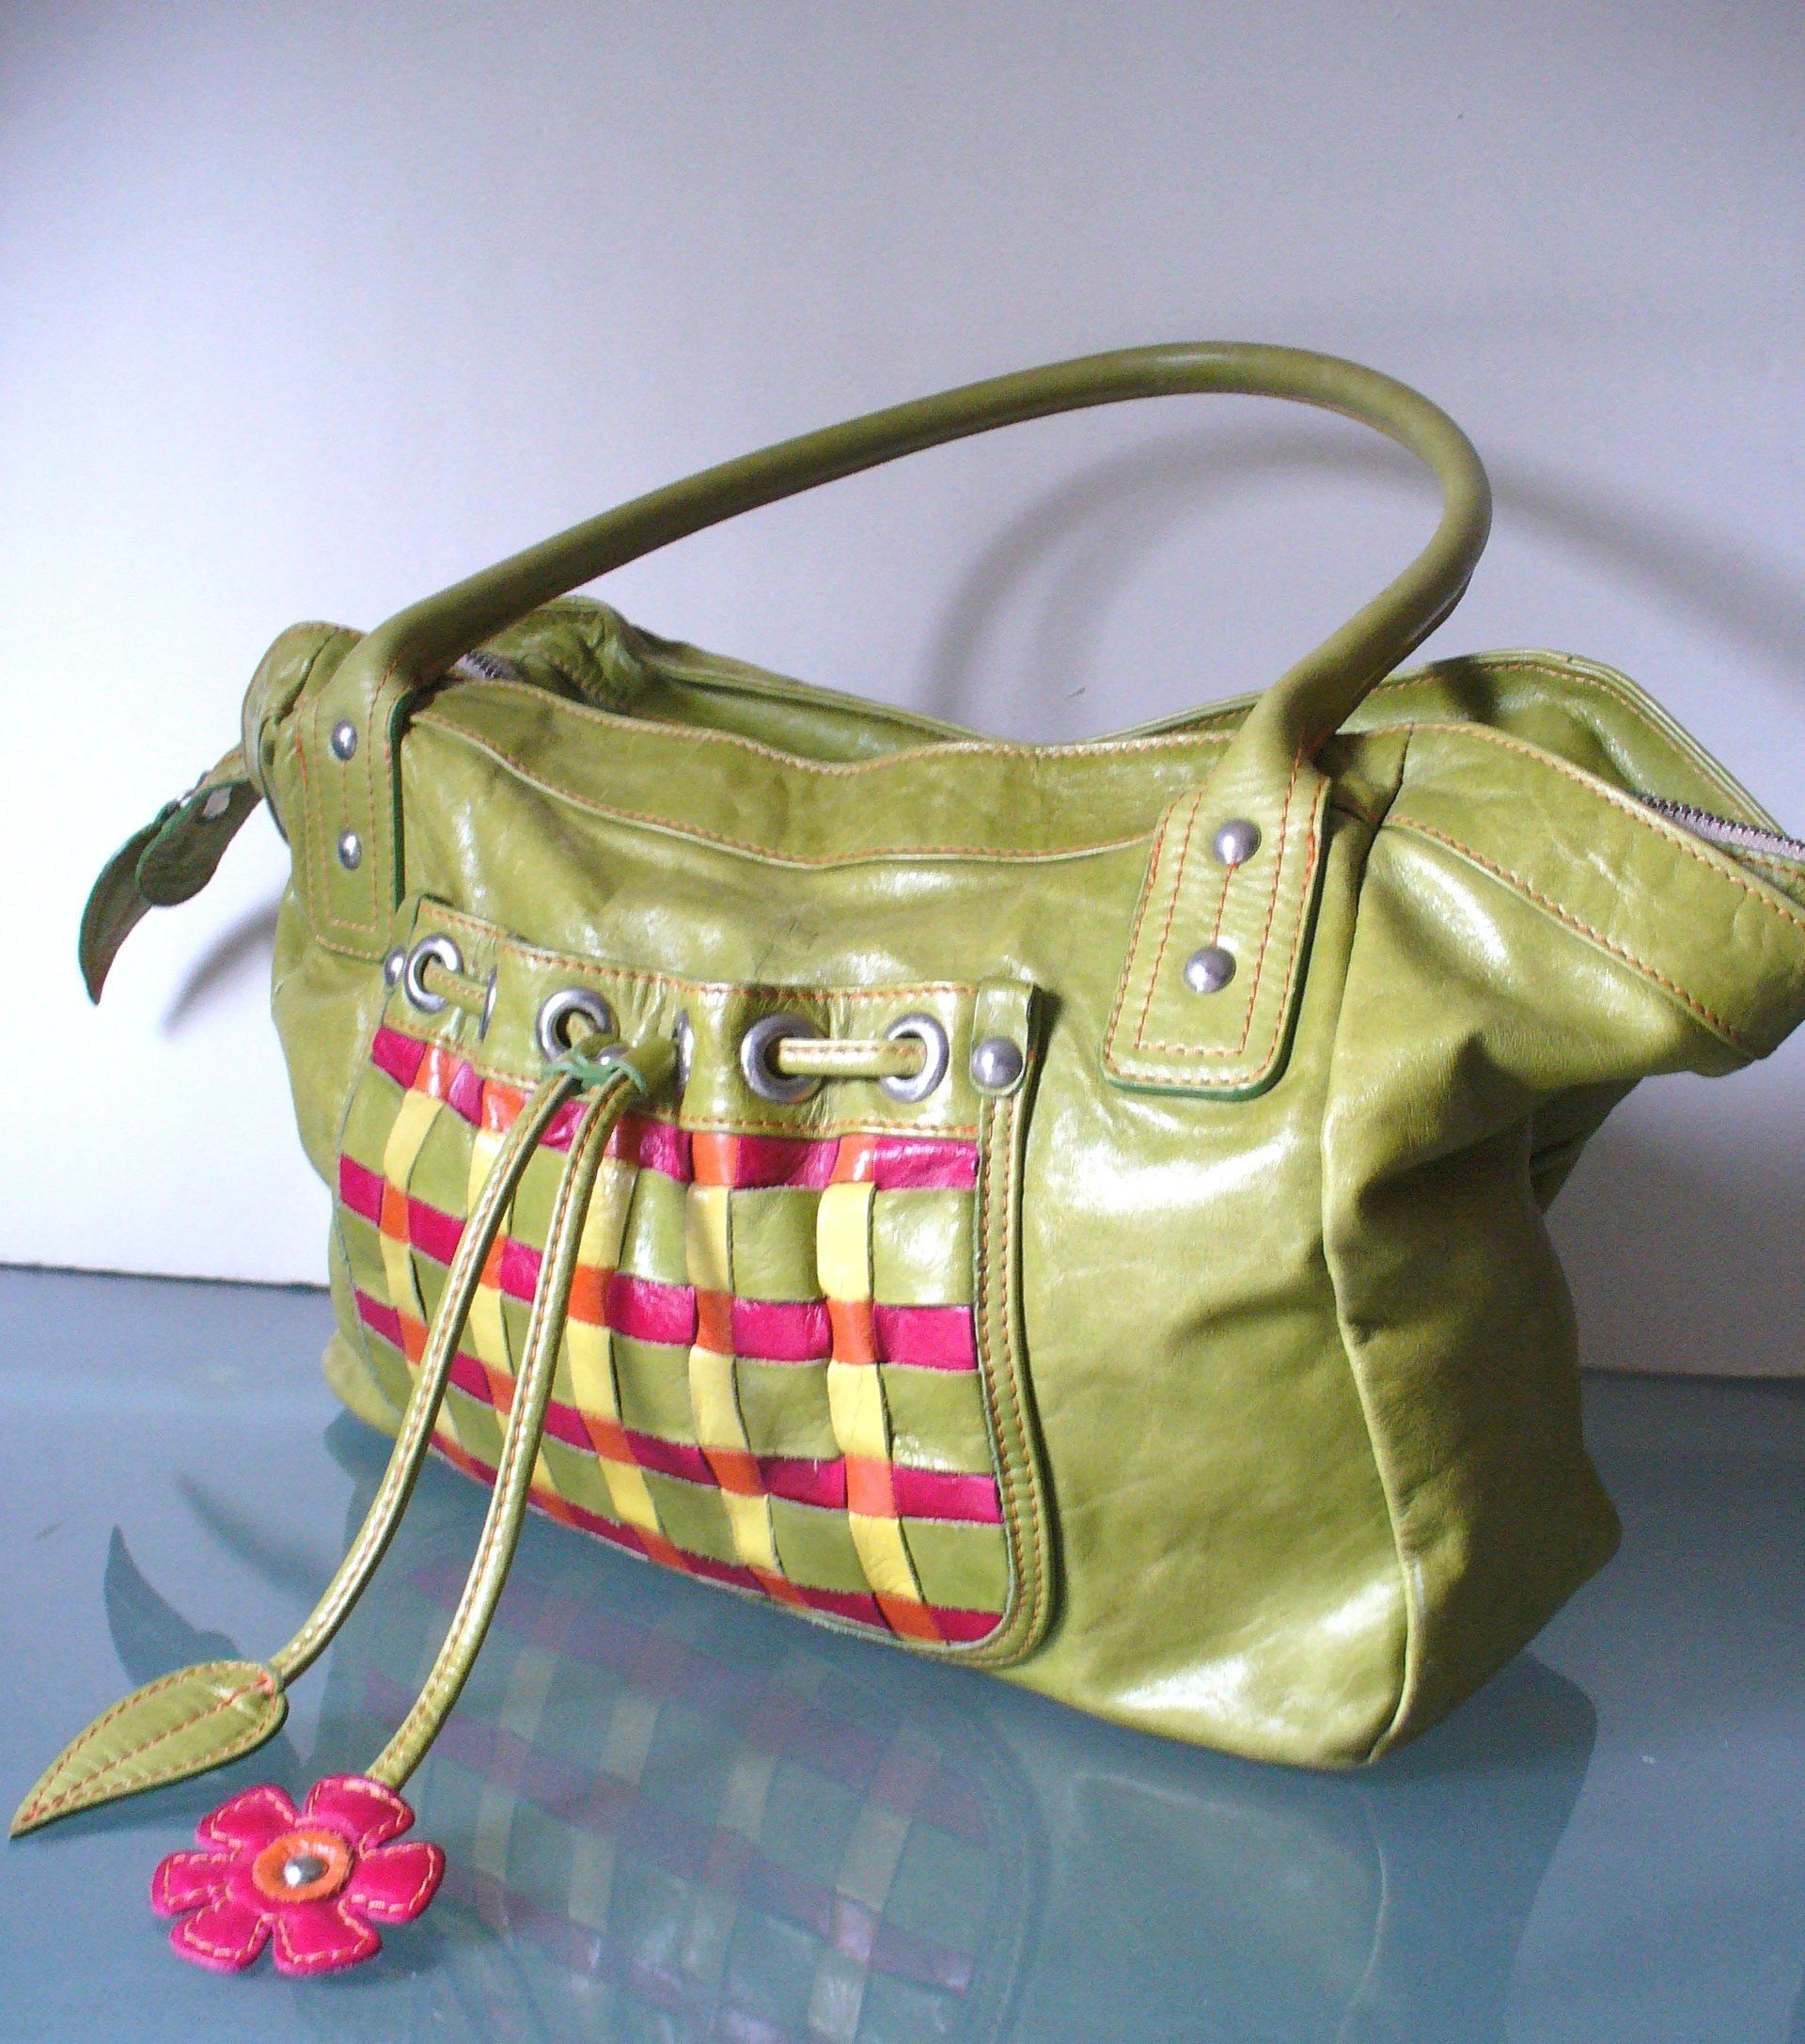 Sofia C Made In Italy Olive Green Bag By Eurotraaly On Etsy Vintage